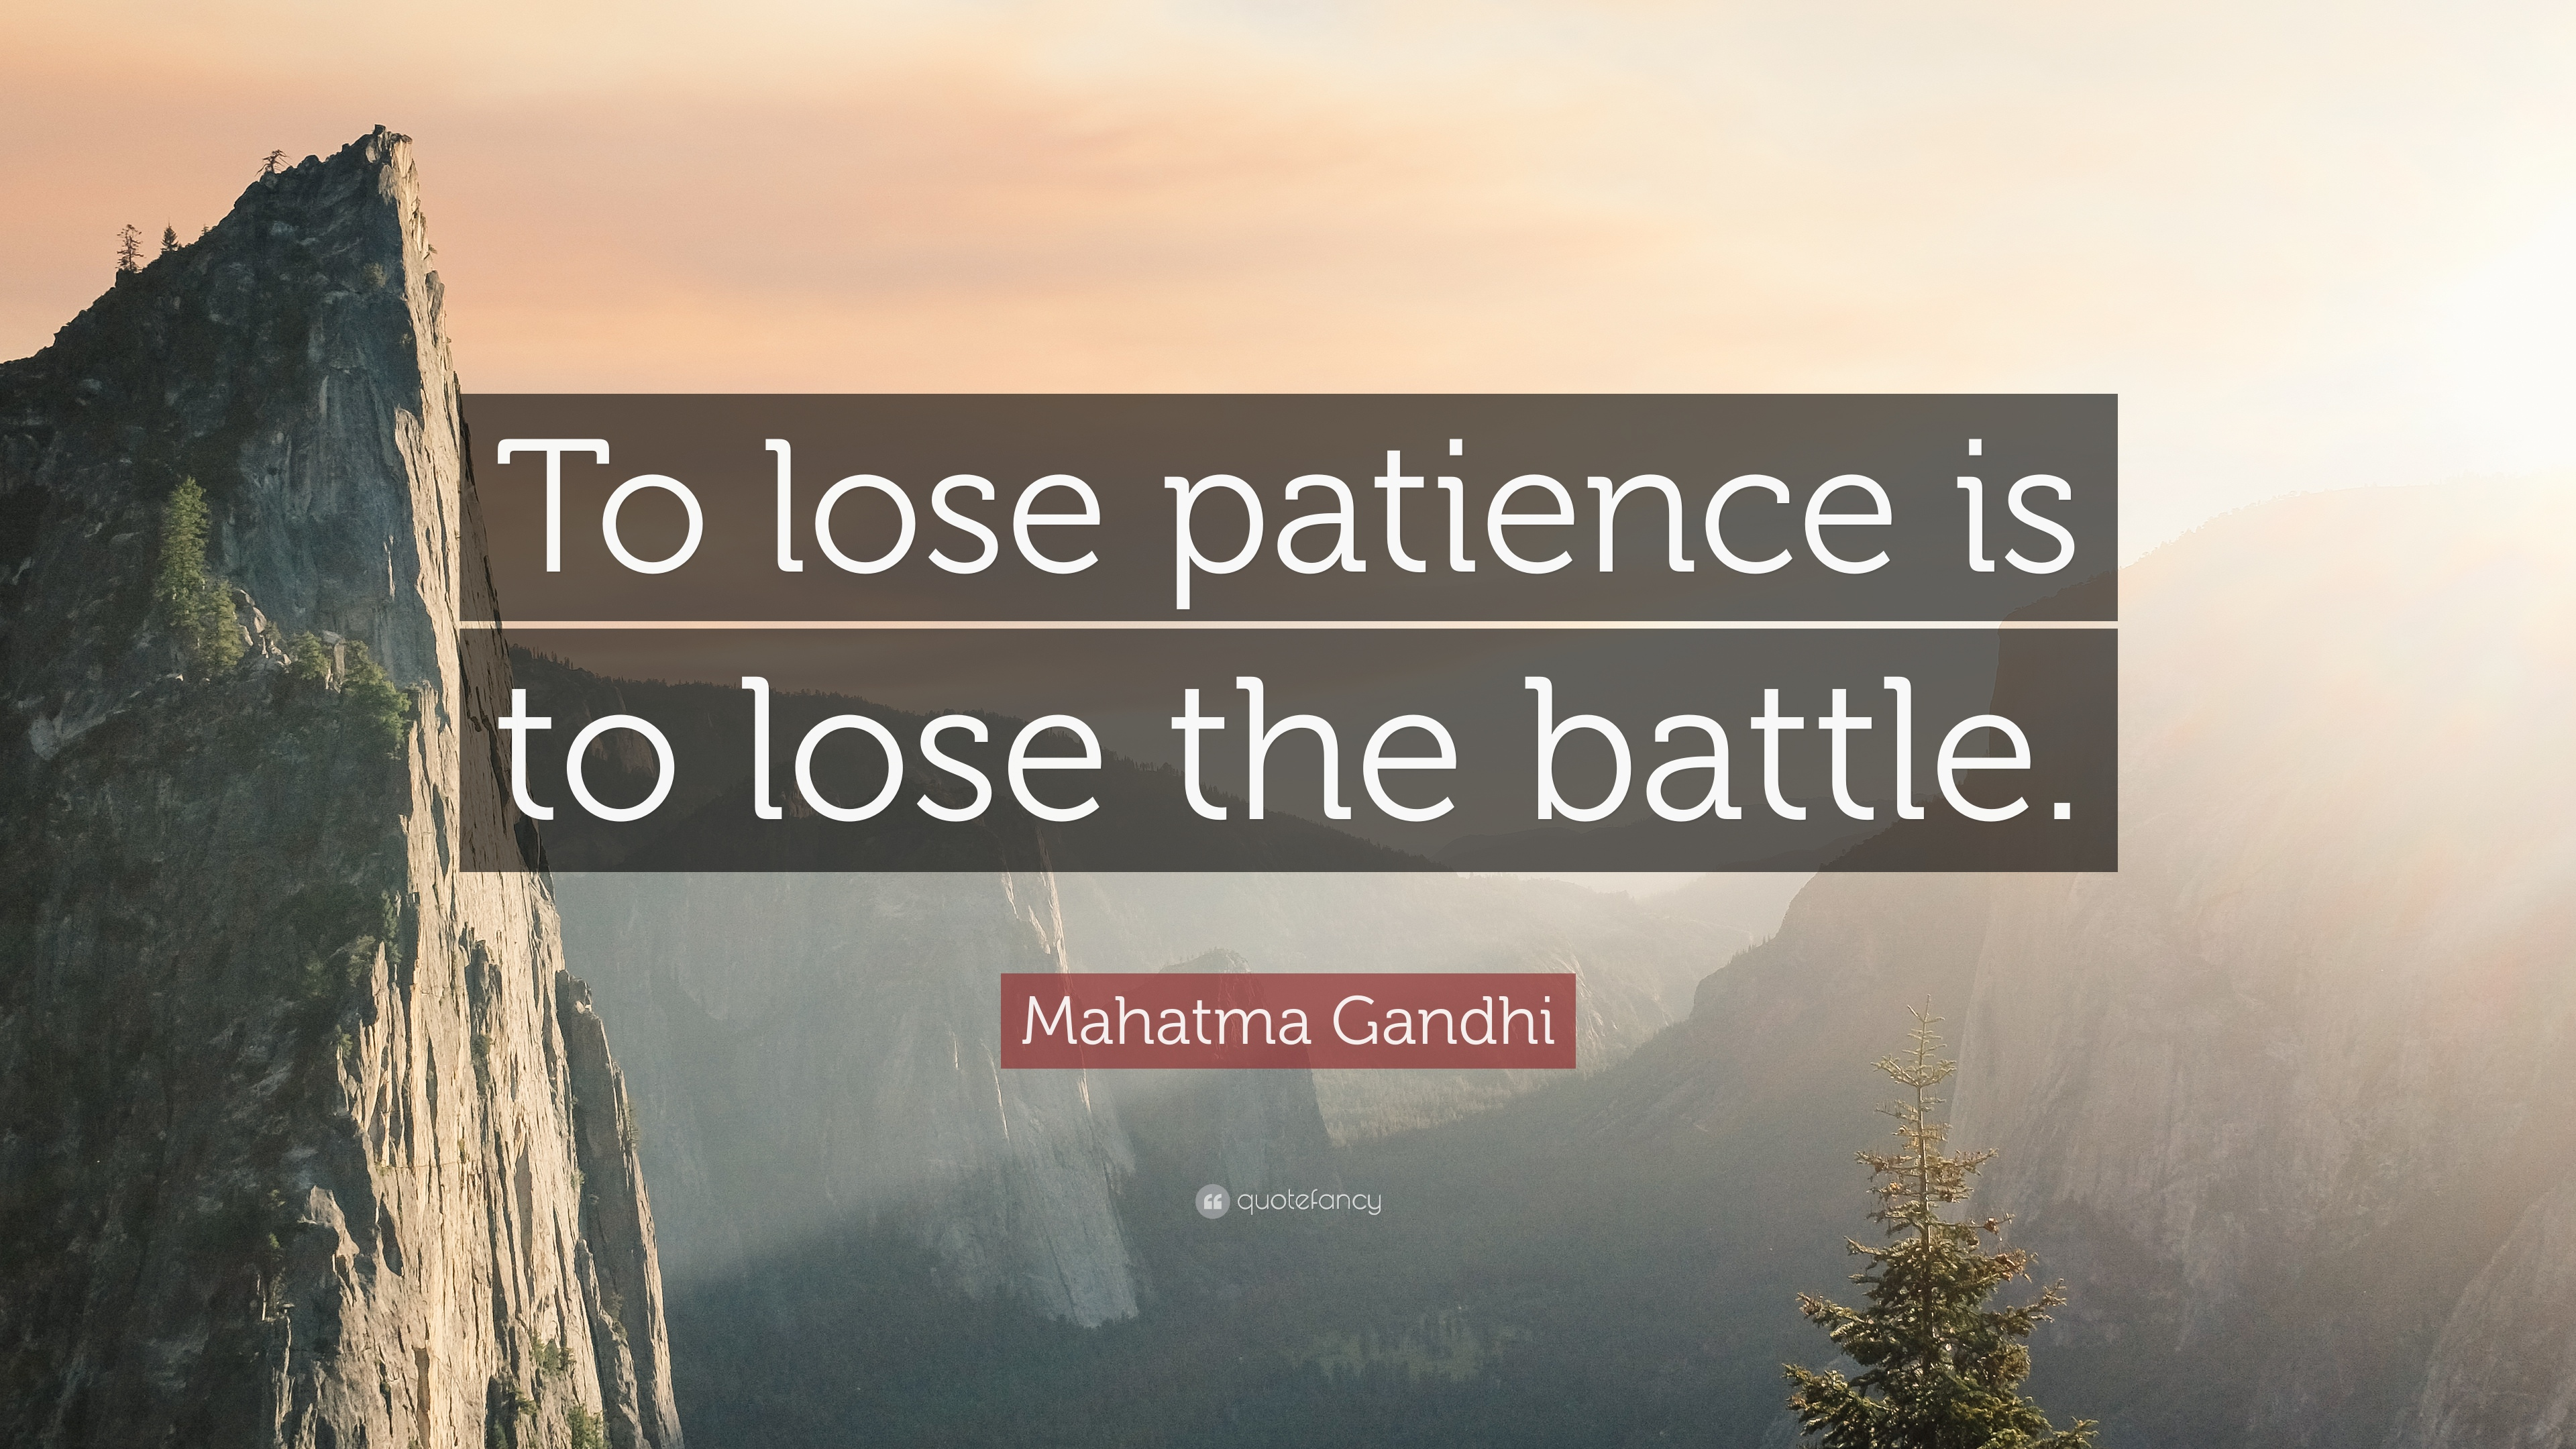 Mahatma Gandhi Quote: U201cTo Lose Patience Is To Lose The Battle.u201d